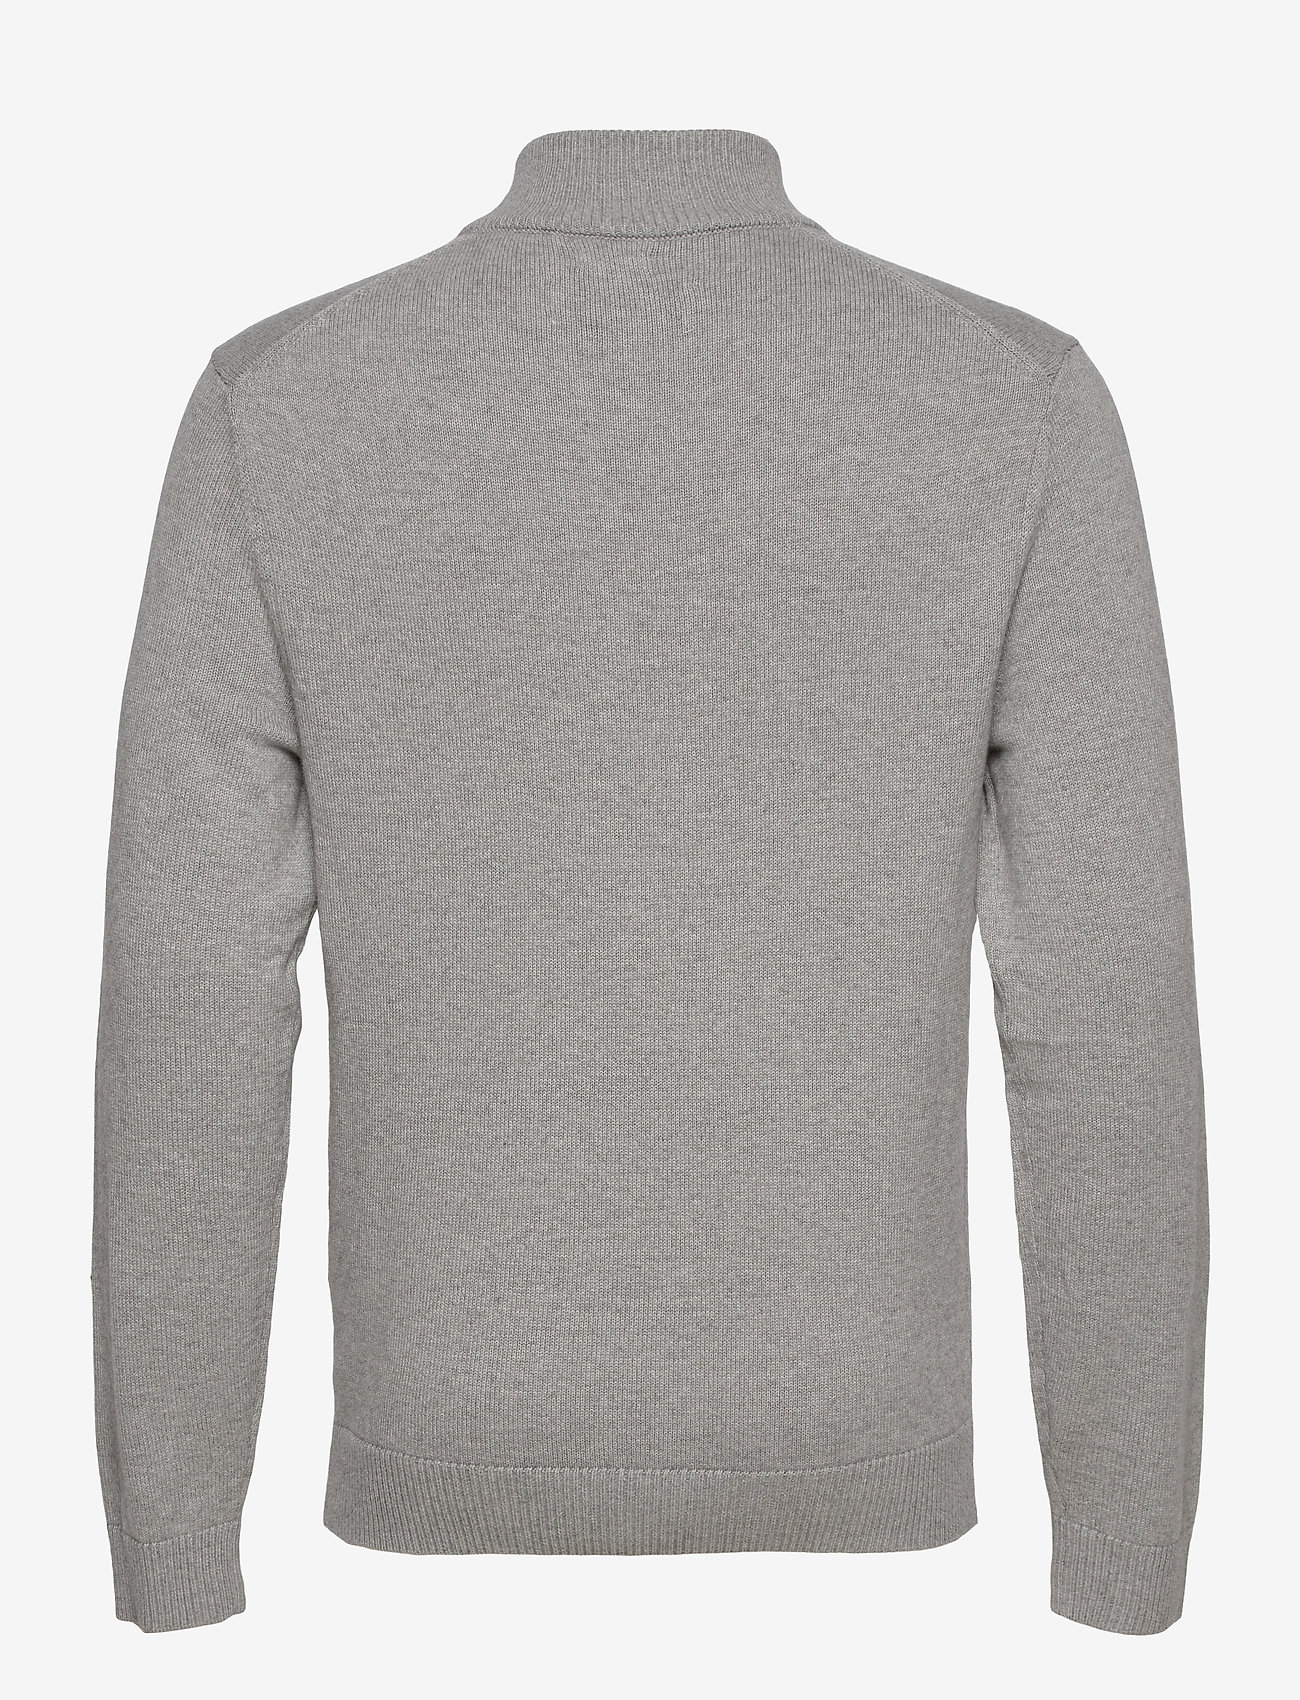 Abercrombie & Fitch - ANF MENS SWEATERS - half zip - med grey flat - 1